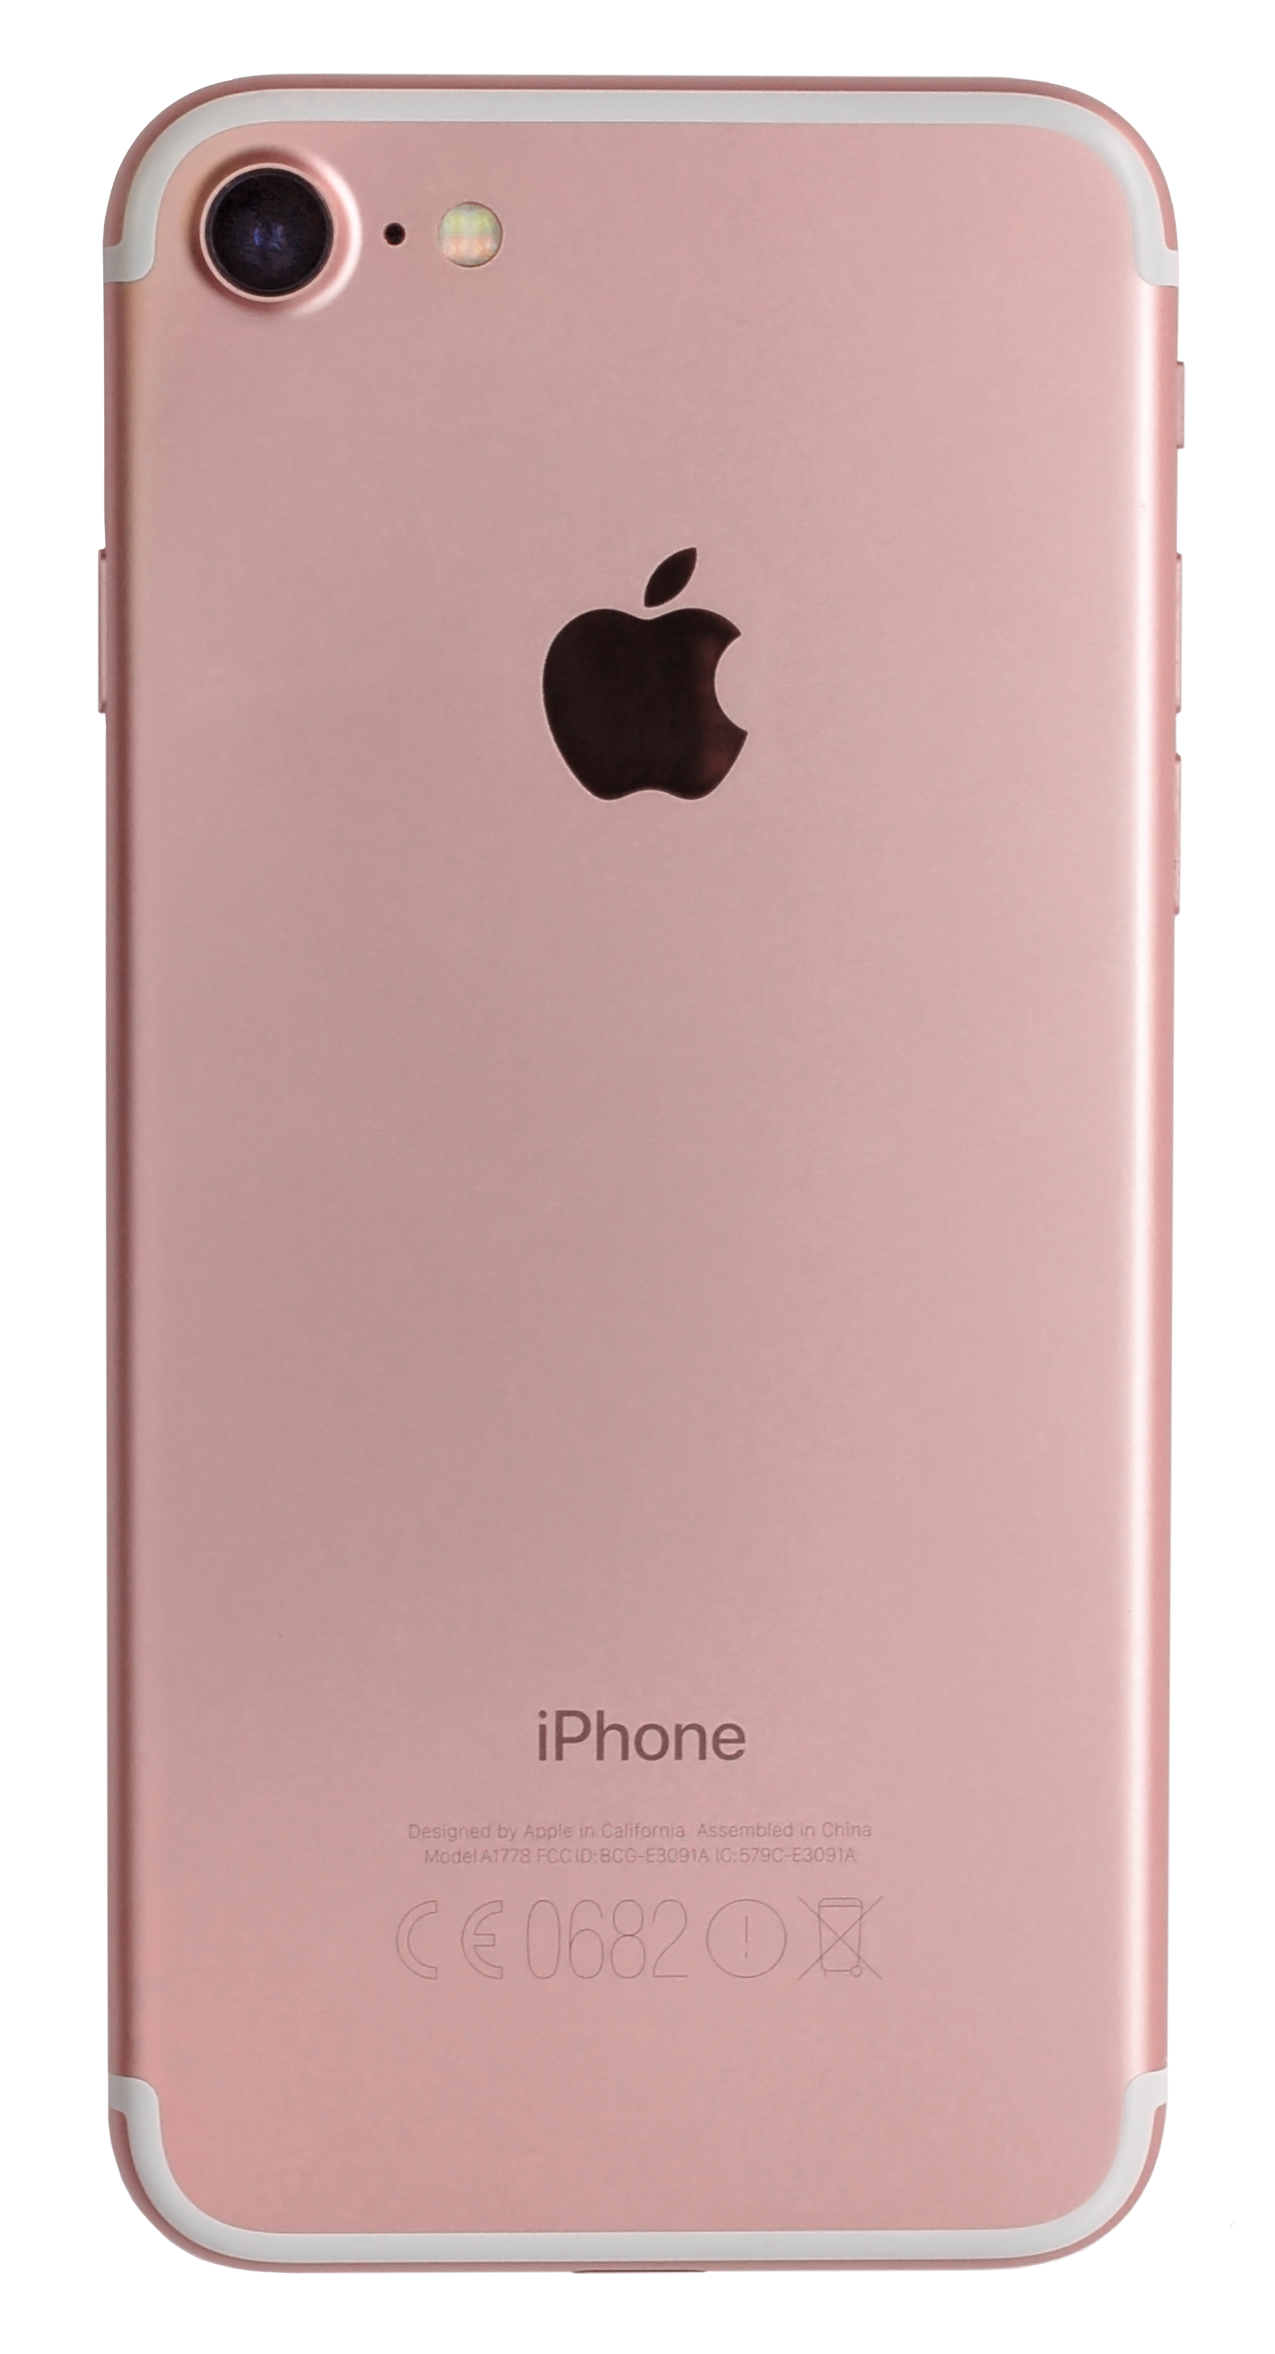 Iphone png transparent. File a rose gold